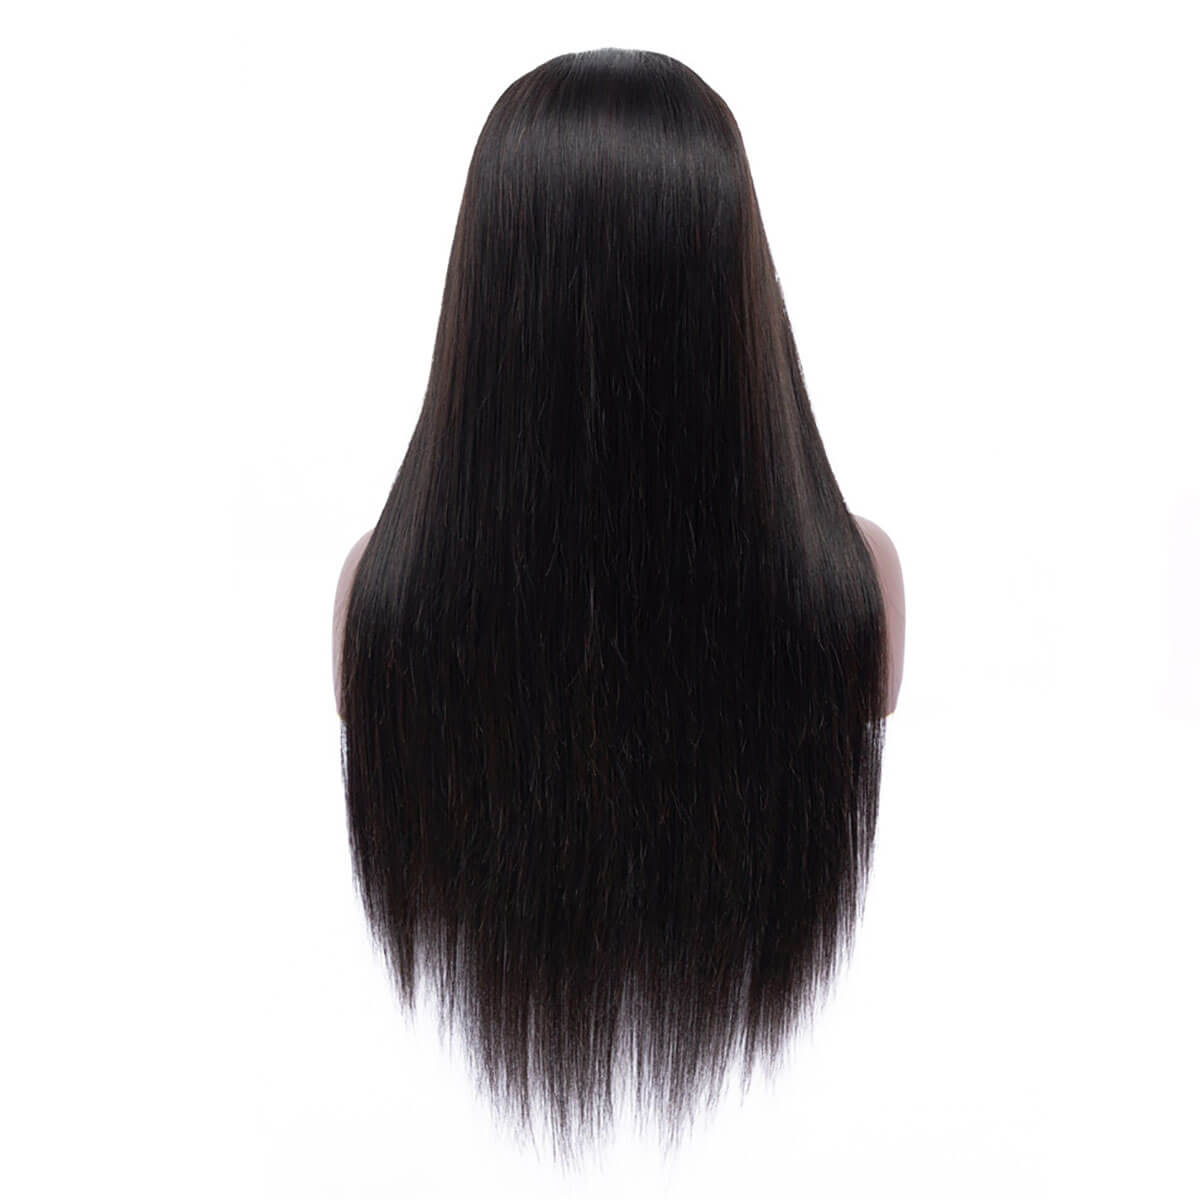 13x4 lace front wig straight hair tuneful hair